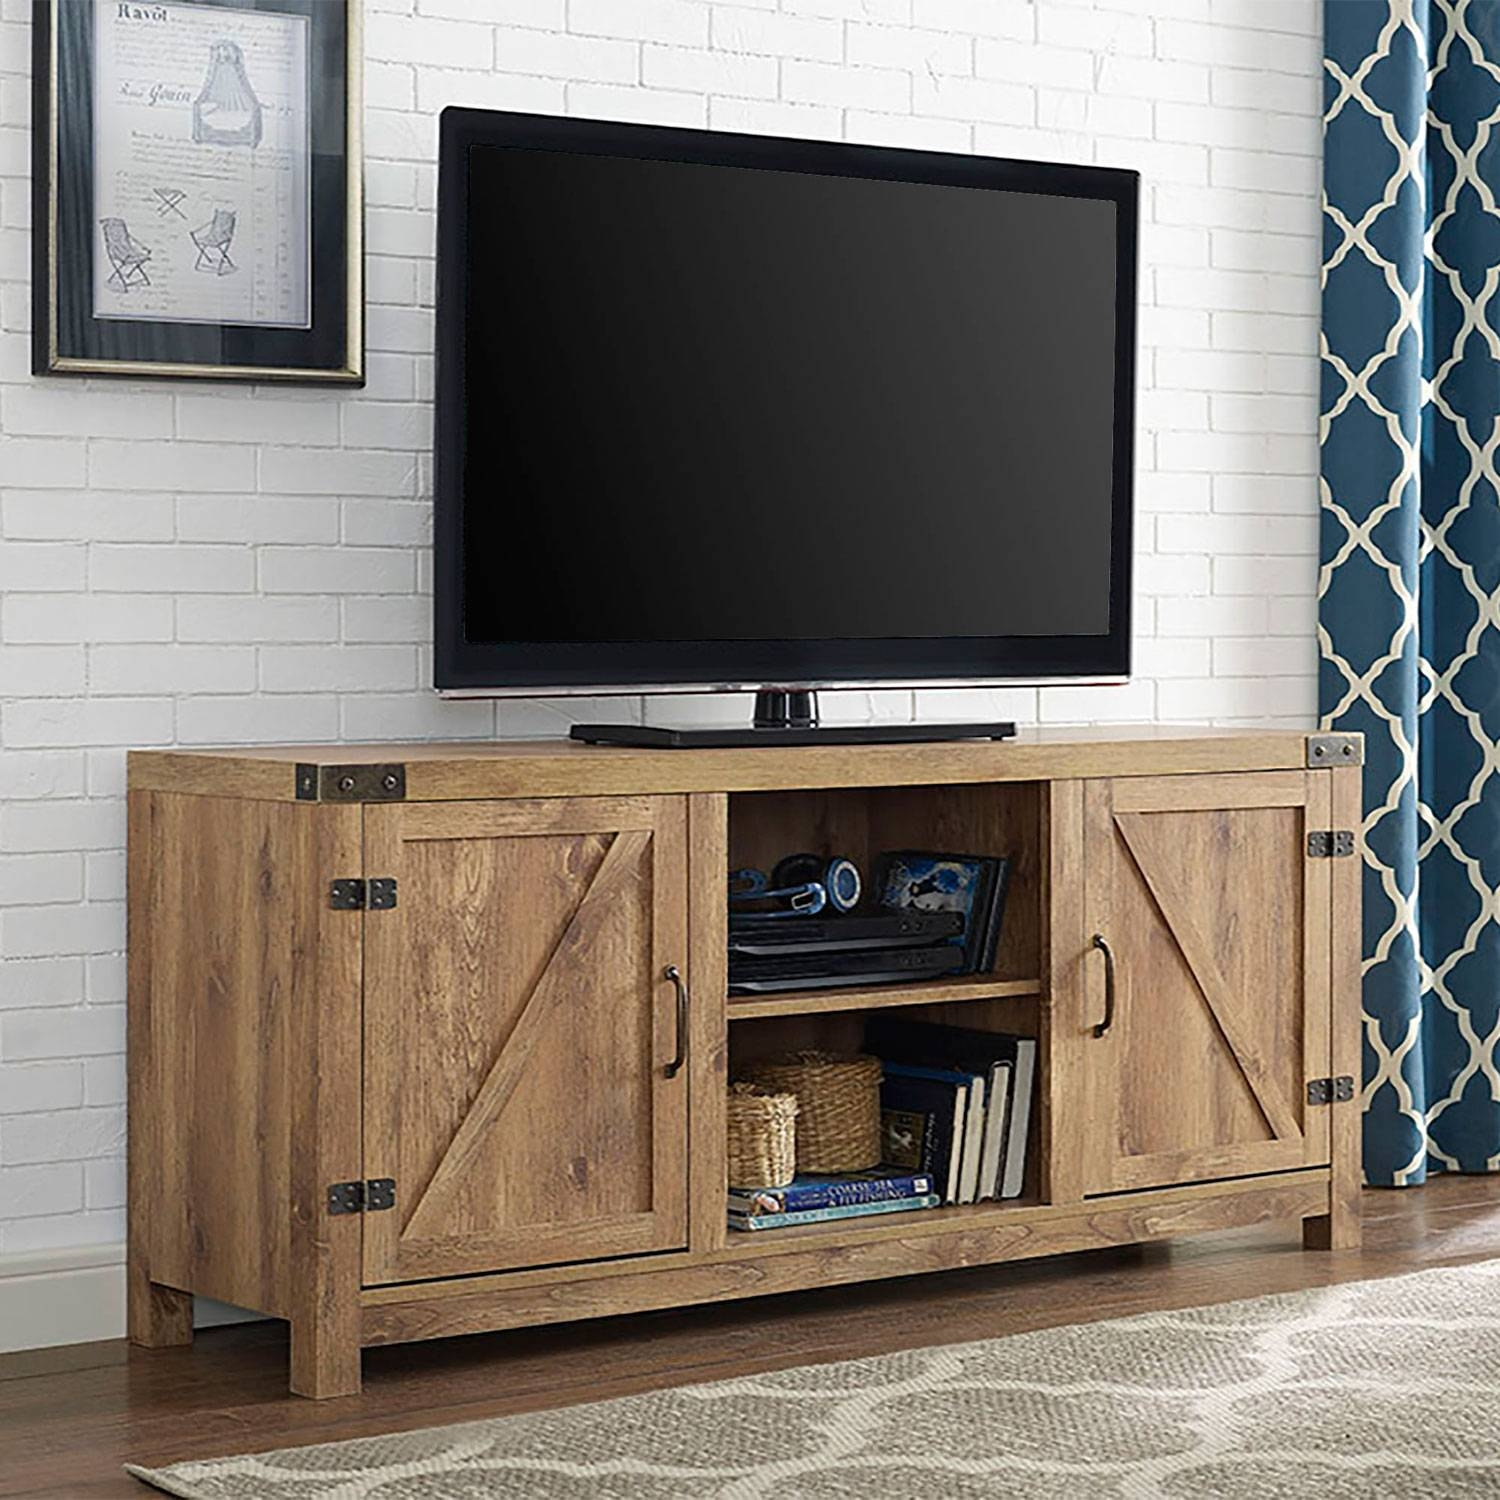 Tv Stands & Cabinets On Sale   Bellacor In Gold Tv Cabinets (View 12 of 15)